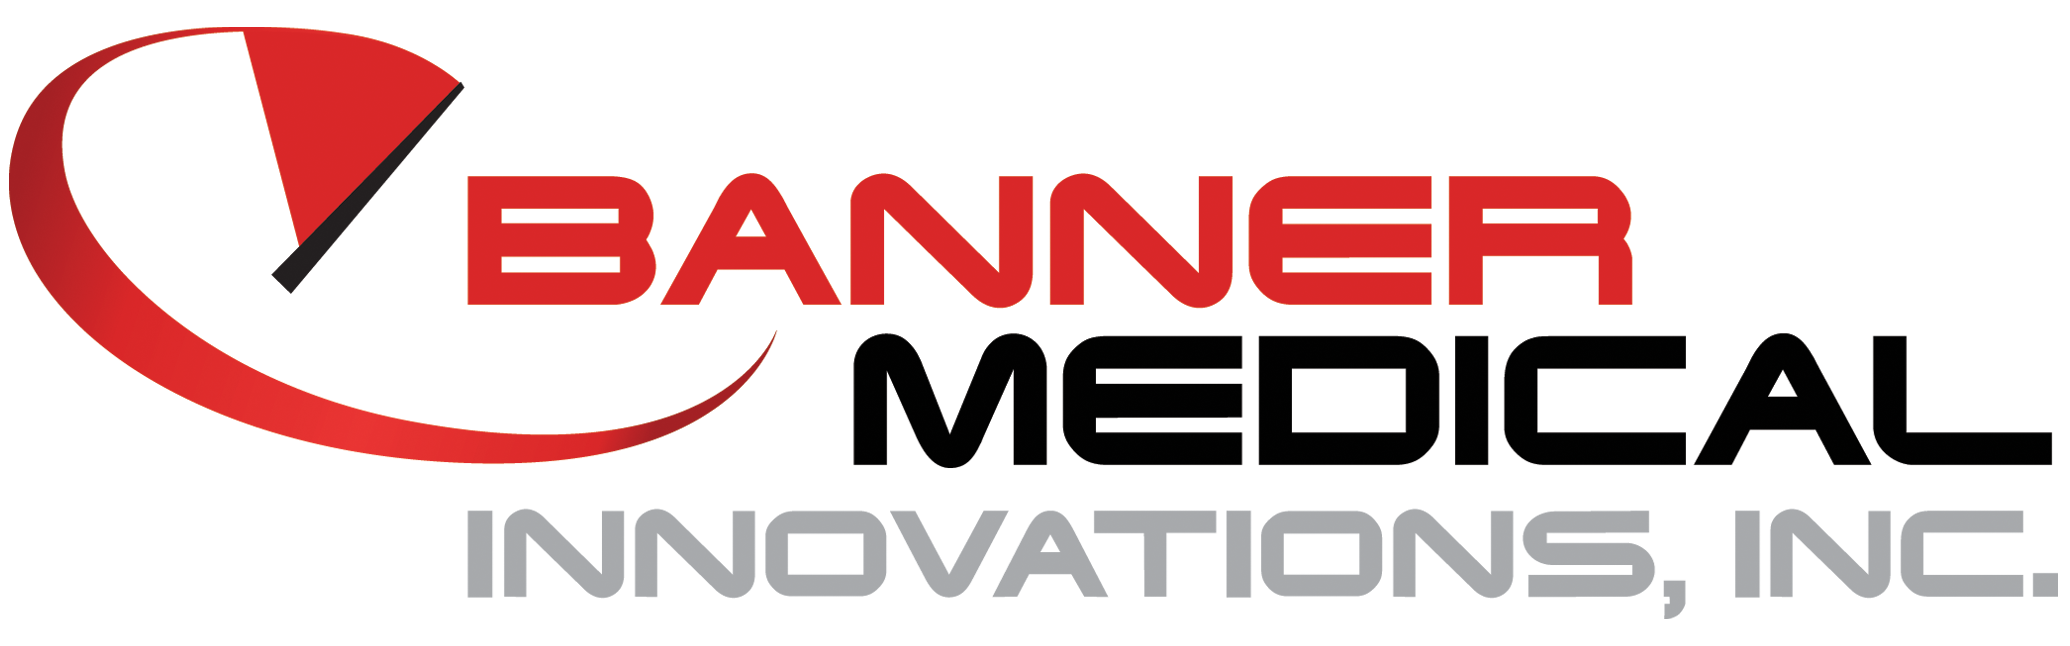 Banner Medical Innovations, Inc.